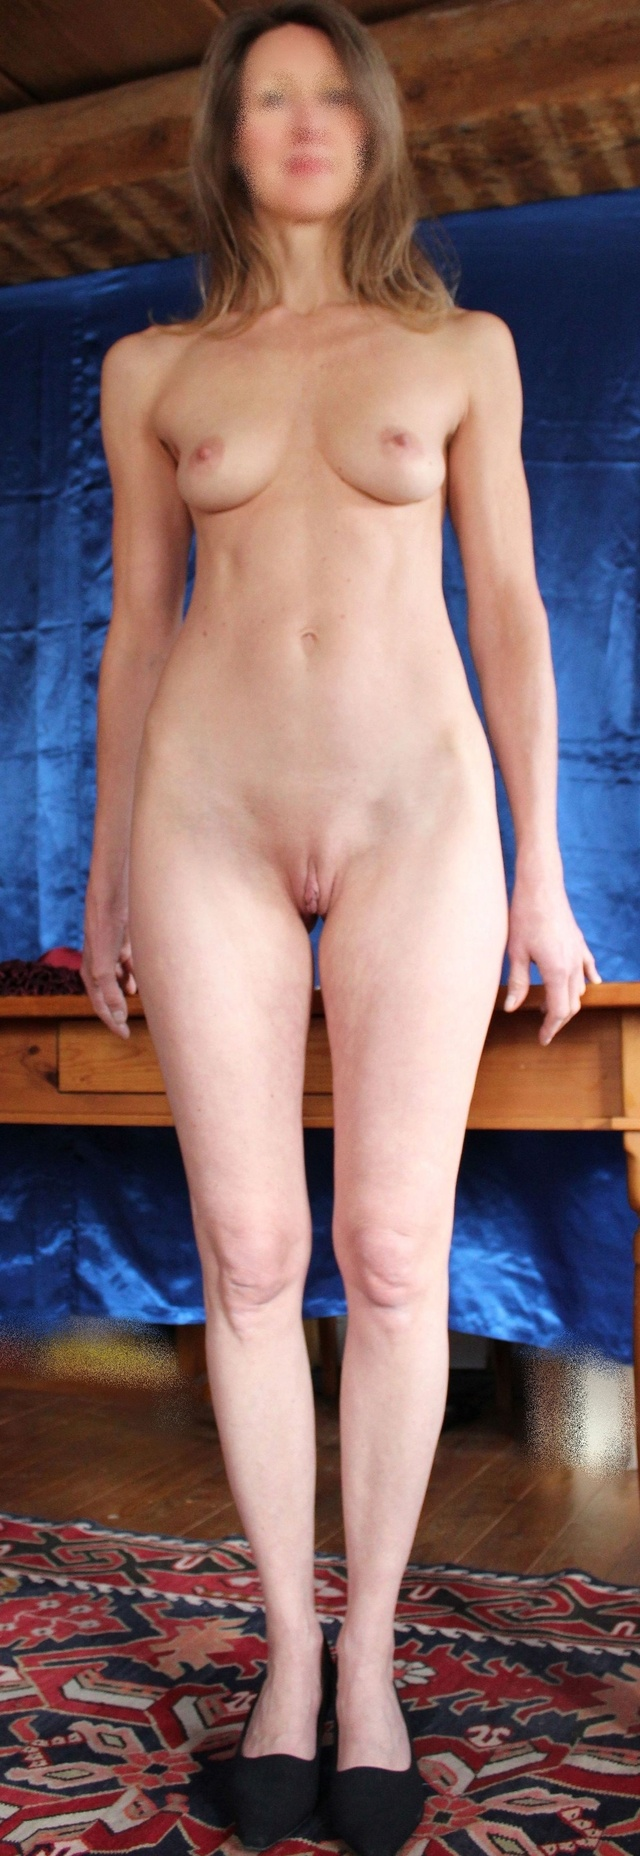 nude standing with dildo